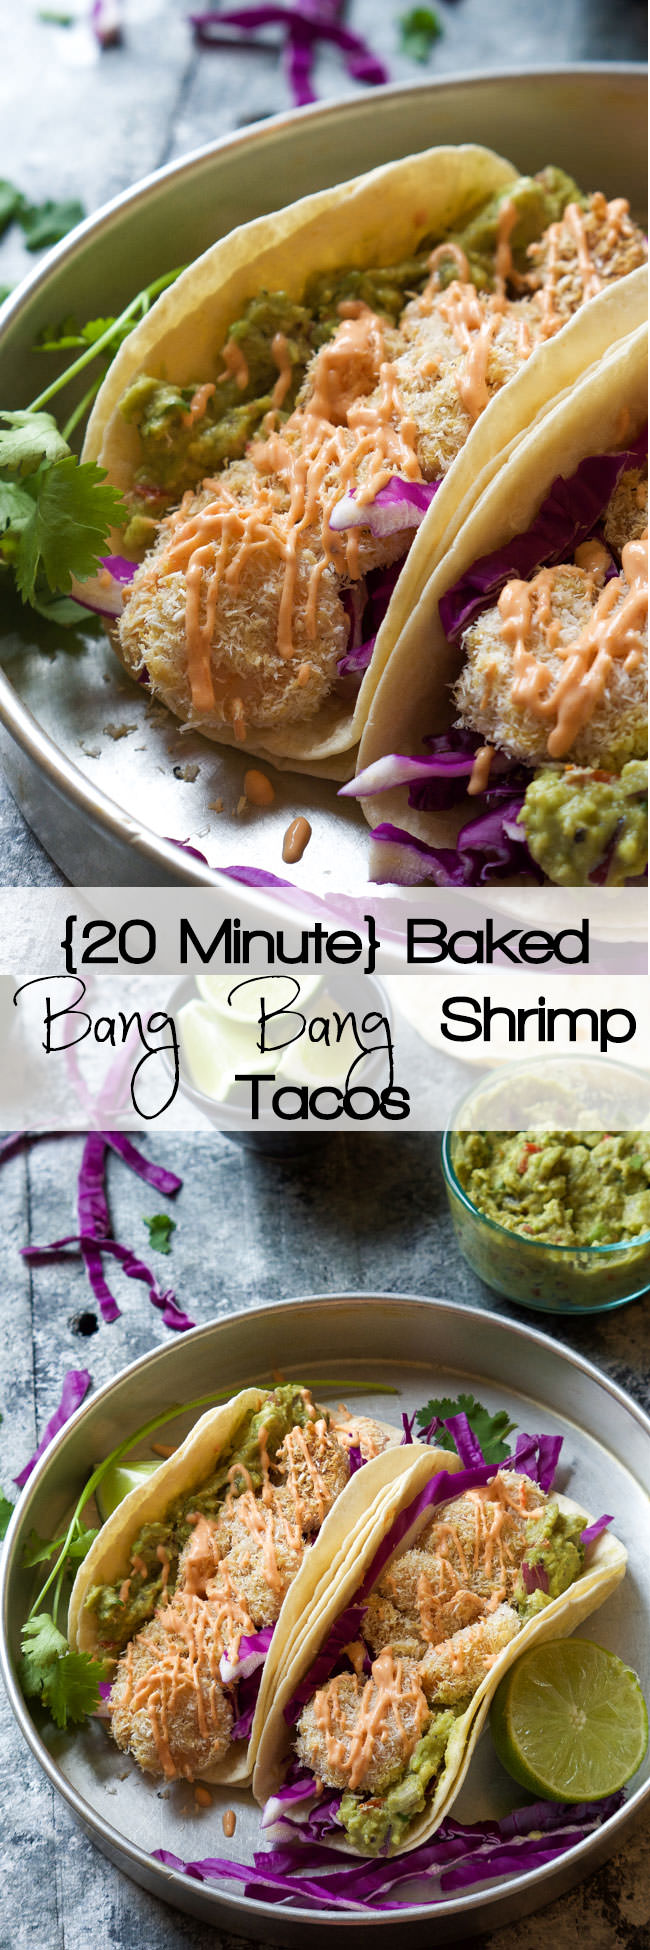 A skinny makeover of a restaurant classic! Skinny Baked Bang Bang Shrimp Tacos combine two of my favorites into one flavorful dish that is ready in 20 minutes! #glutenfree #bangbangshrimp #Mexican #Tacos